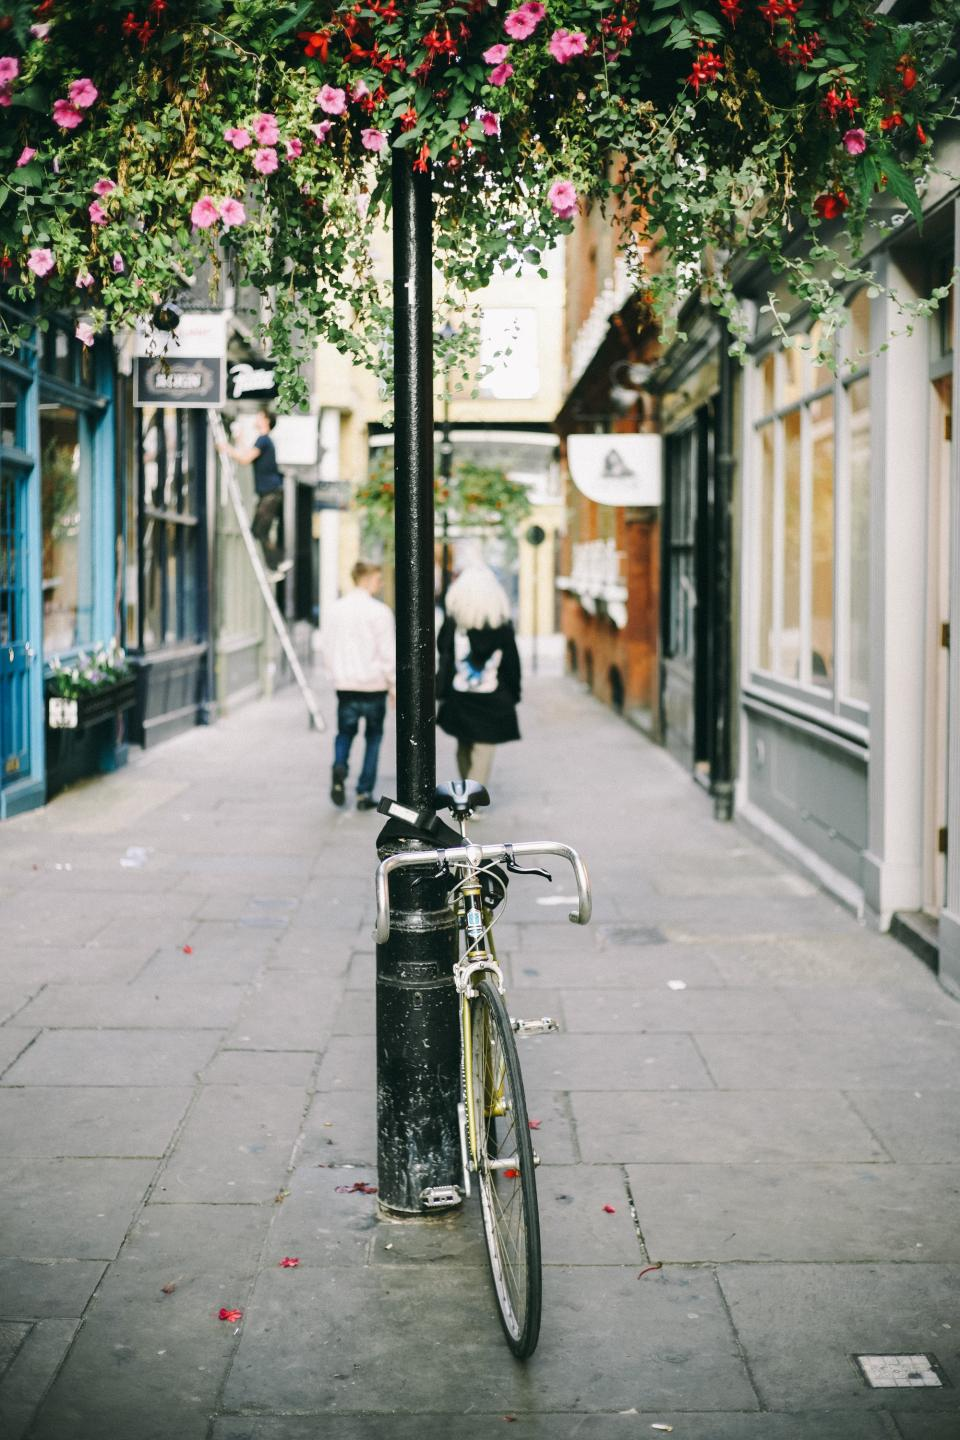 bike bicycle pole flowers plants petals building alley sidewalk people walking men girl